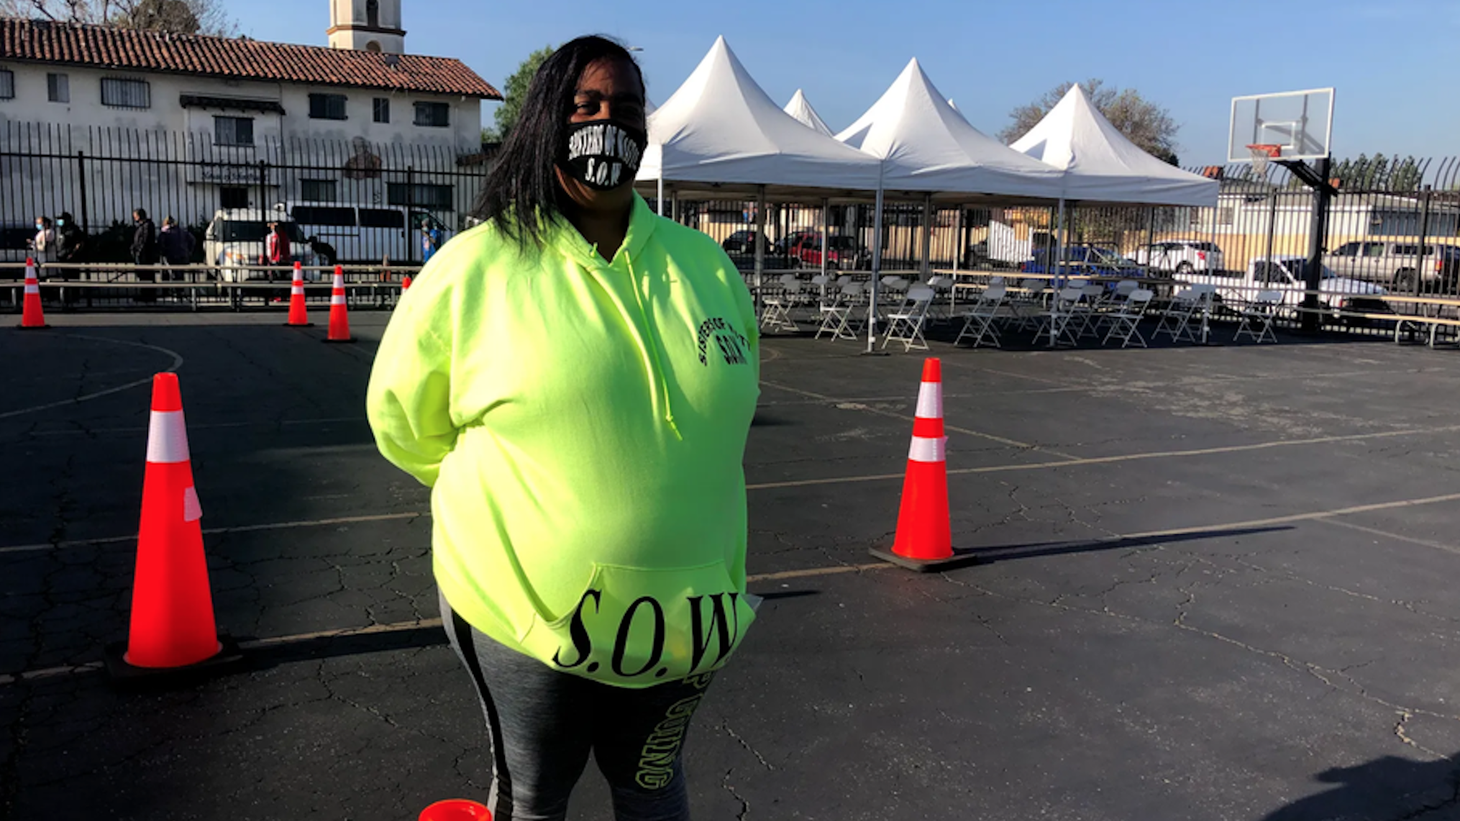 Robin Daniels, CEO of the nonprofit Sisters of Watts, says she called her neighbors and knocked on doors to find patients for the Watts mobile vaccination site.